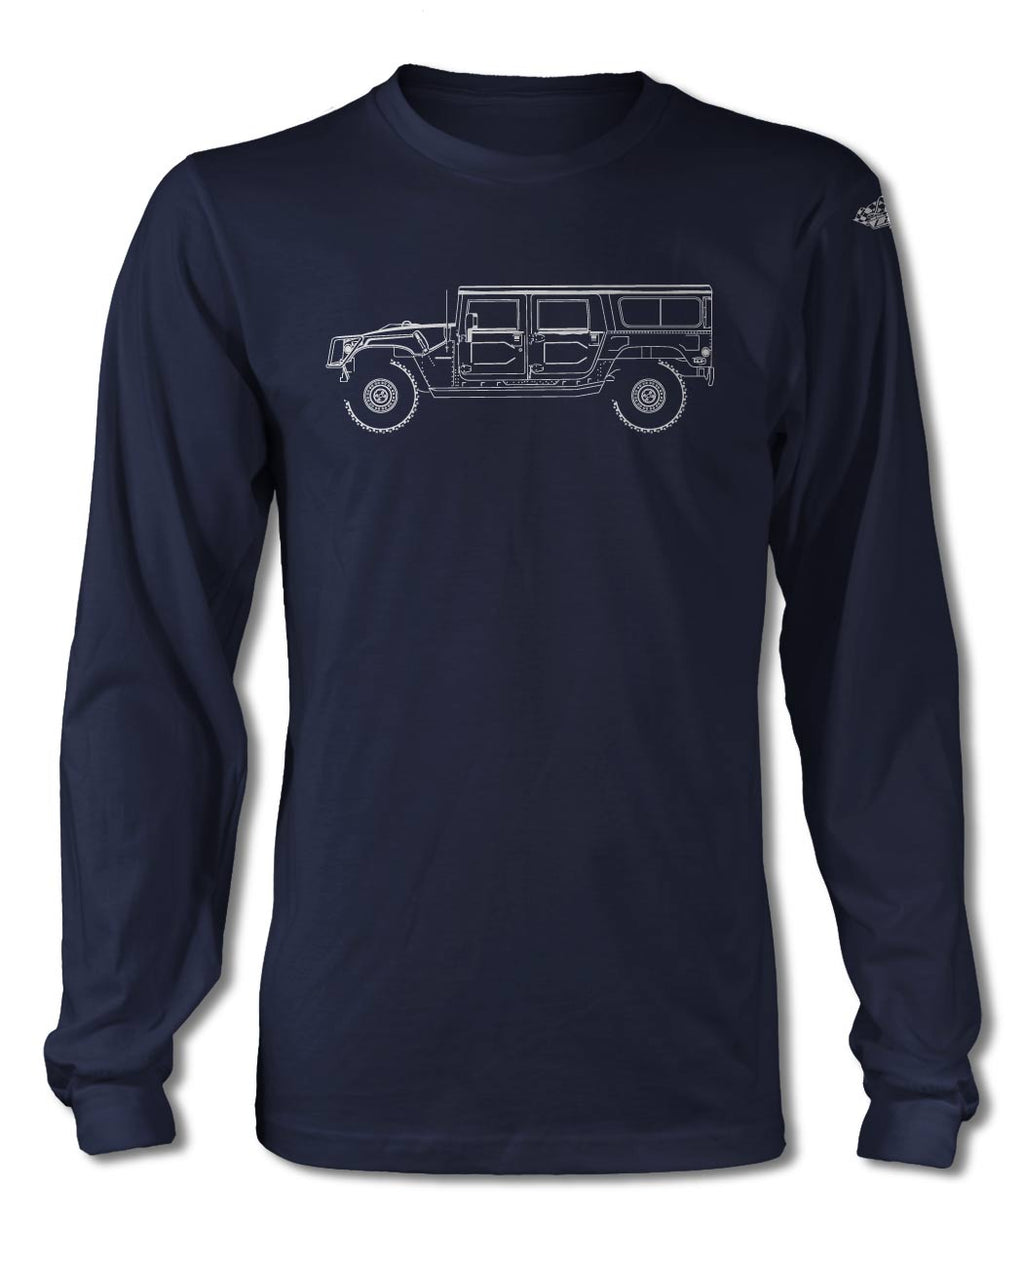 Hummer H1 Station Wagon 4x4 T-Shirt - Long Sleeves - Side View